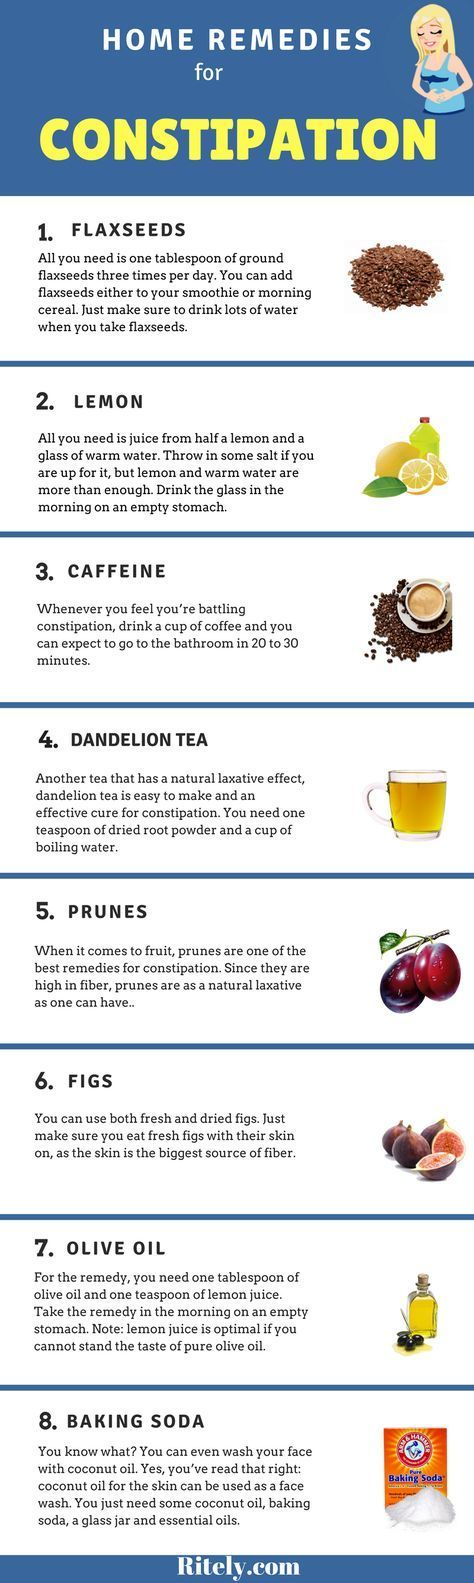 8 best health facts images on Pinterest Health, Health tips and - stool color chart